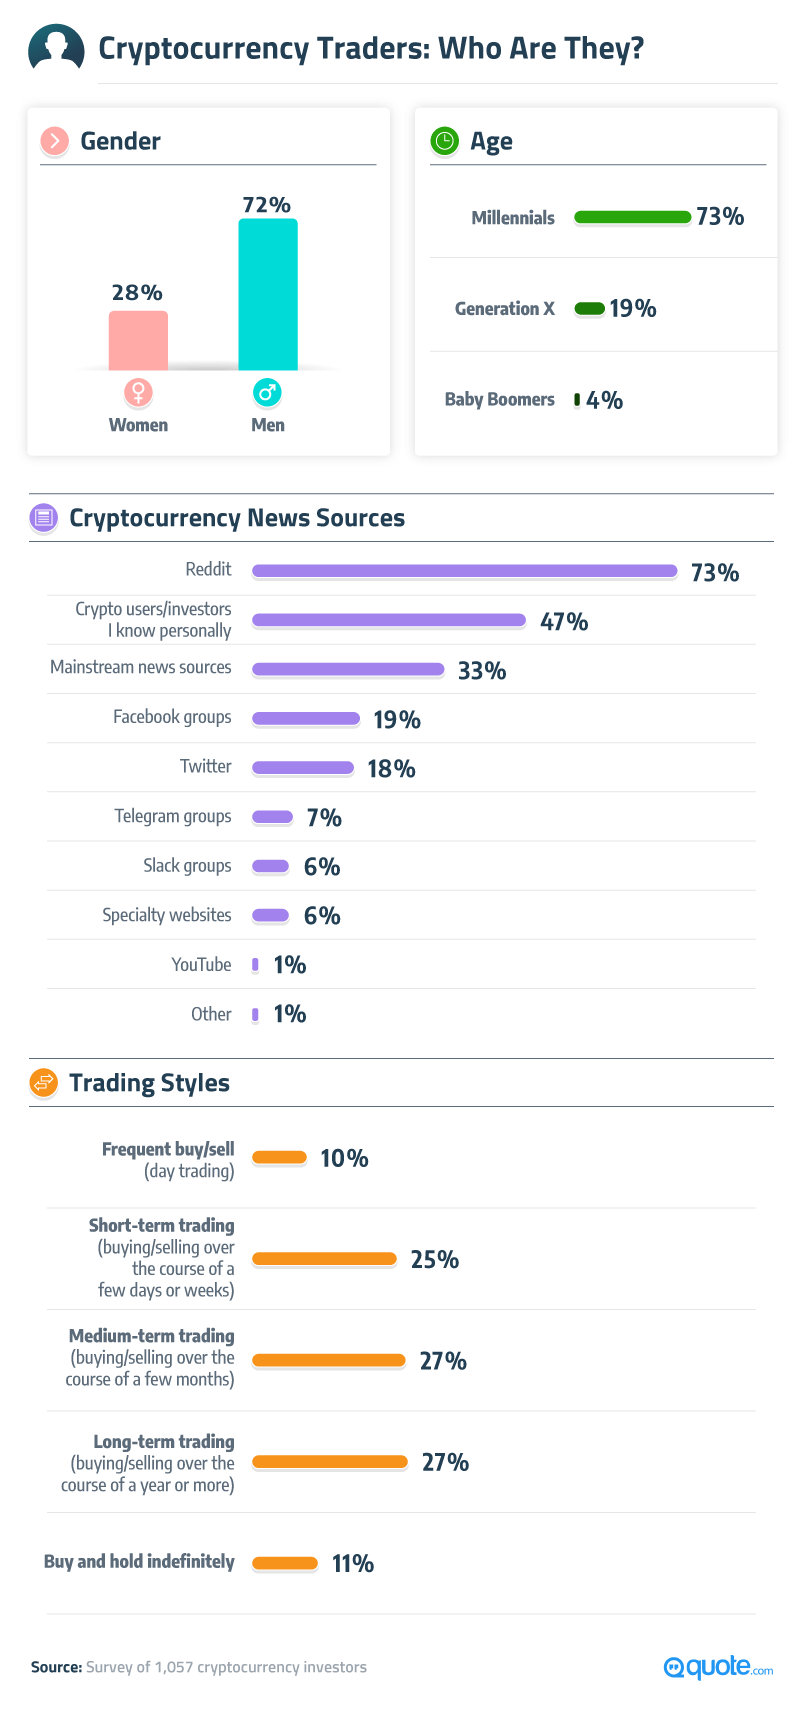 Cryptocurrency Traders: Who Are They